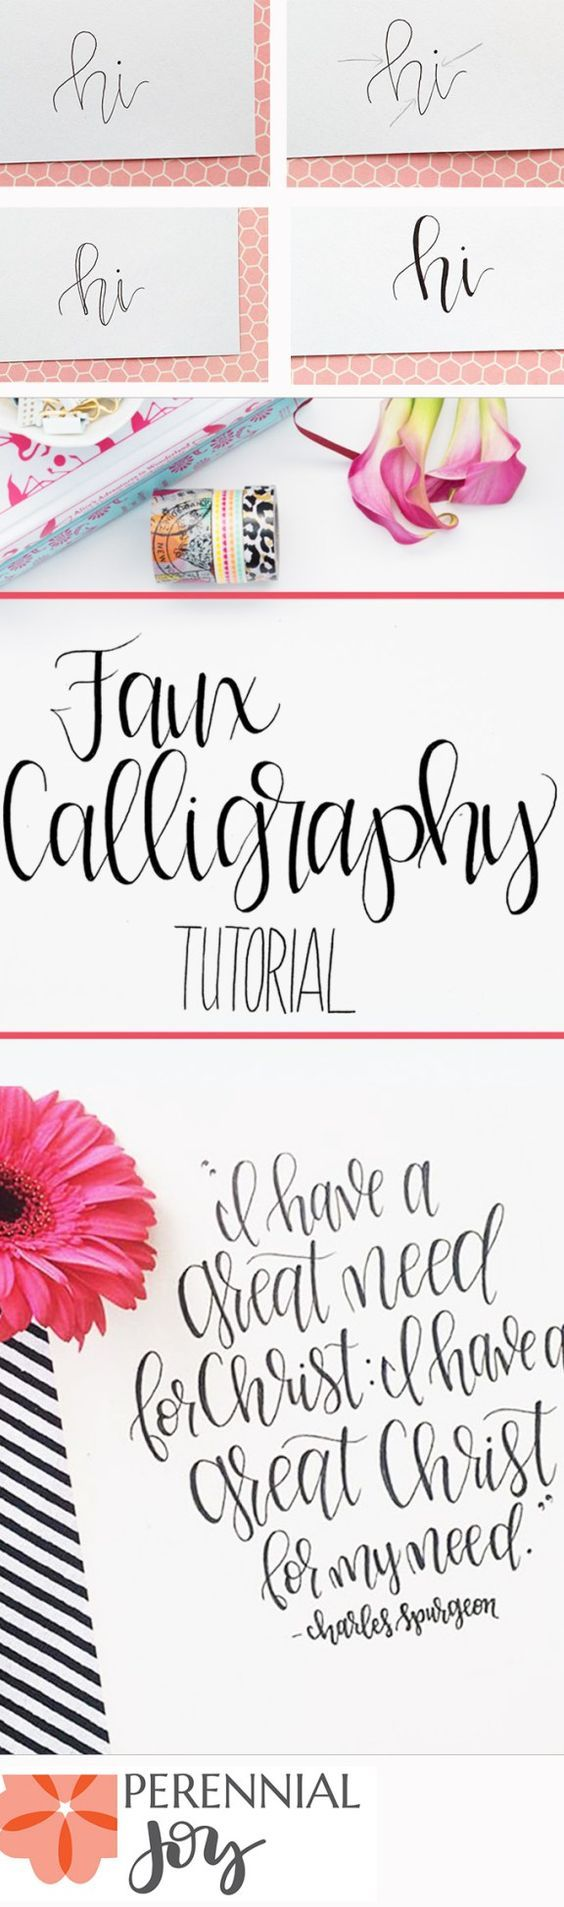 515 best images about bible journaling on pinterest Calligraphy tutorial